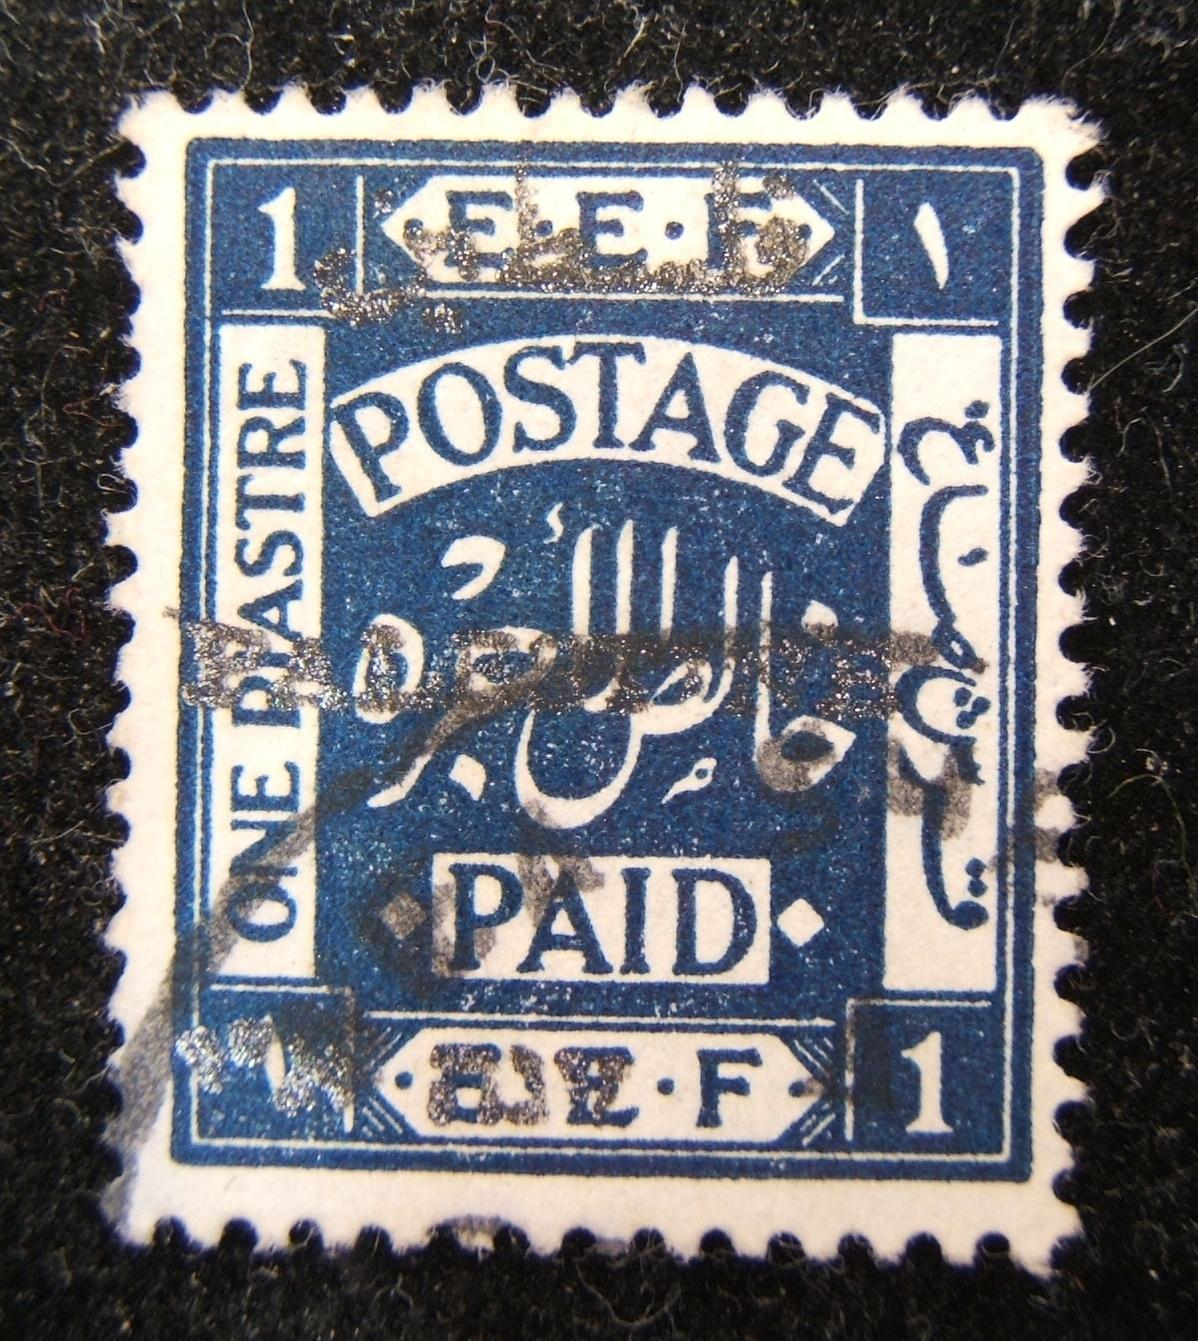 Lot 593 - Stamps: Palestine Mandate  -  Historama HISTORAMA AUCTION #7 - 'Buy or Bid' Sale